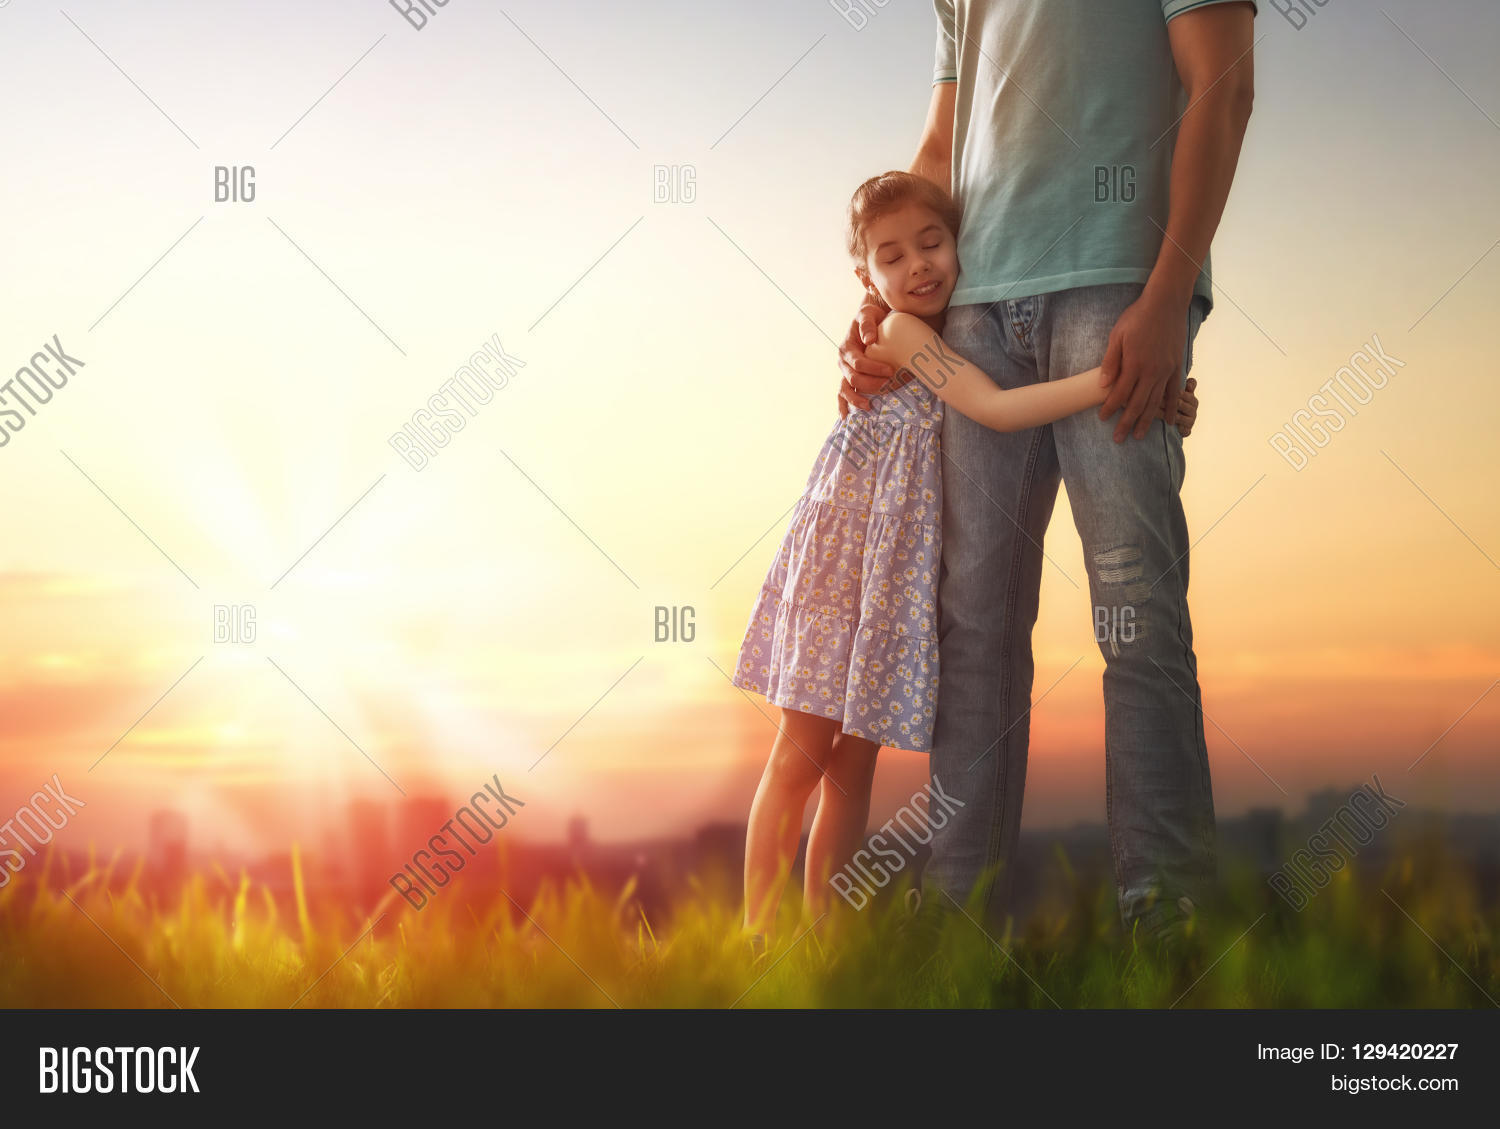 from Devin father sex with small daughter photo